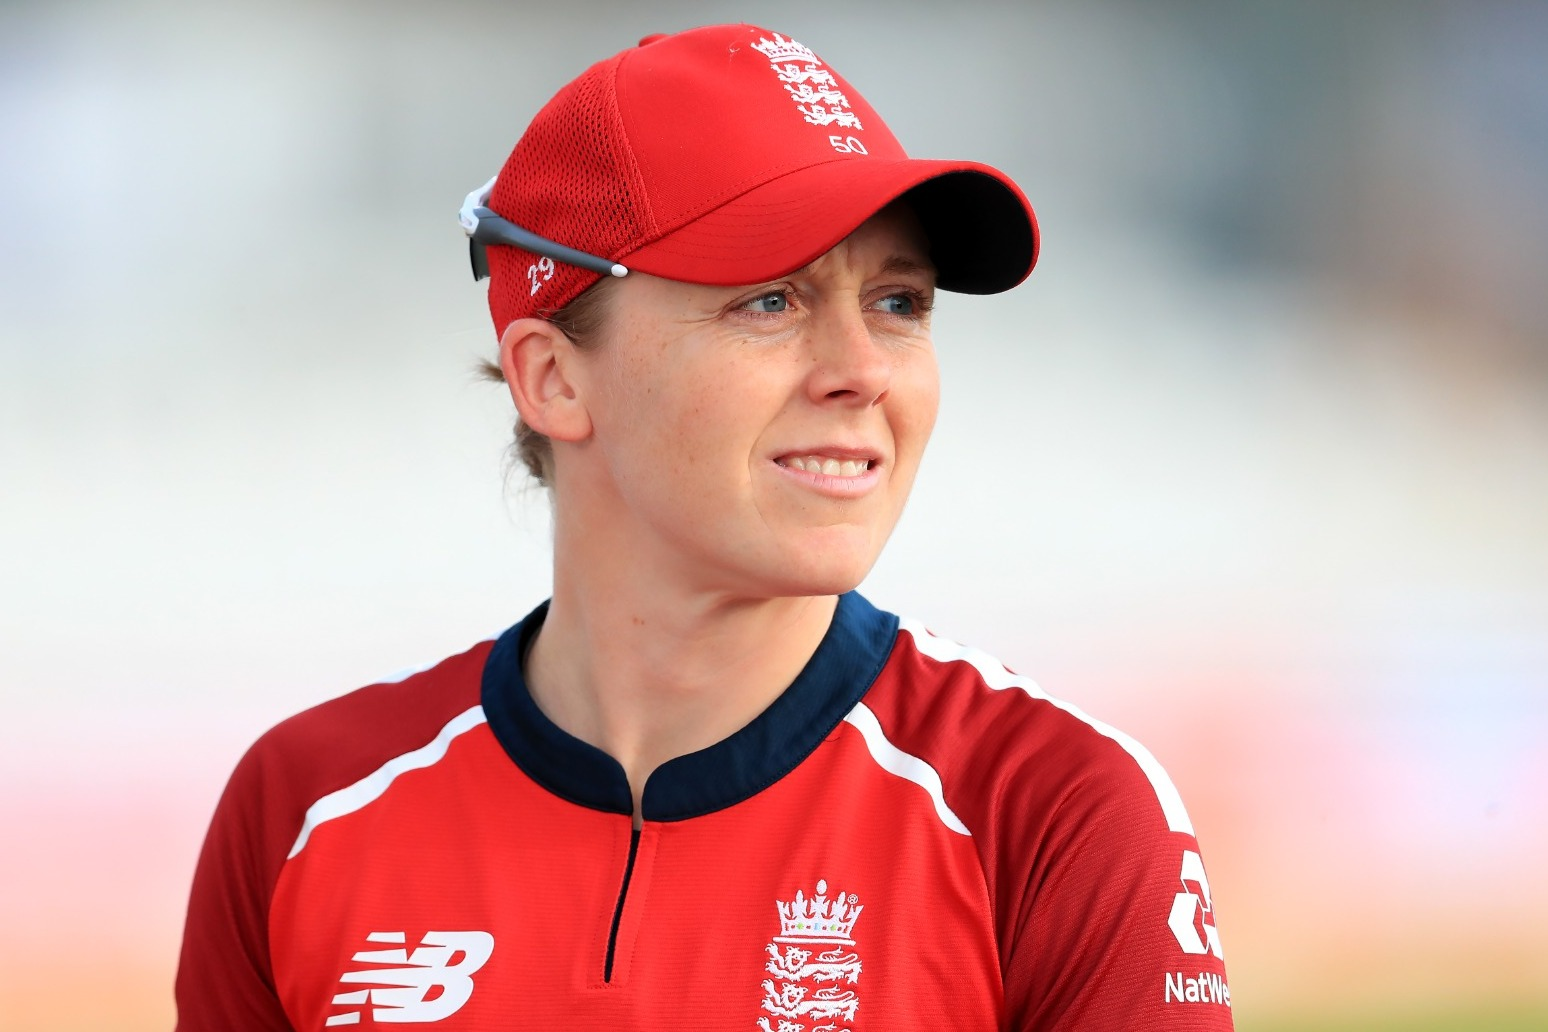 England captain Heather Knight says touring Pakistan would send a 'strong message'